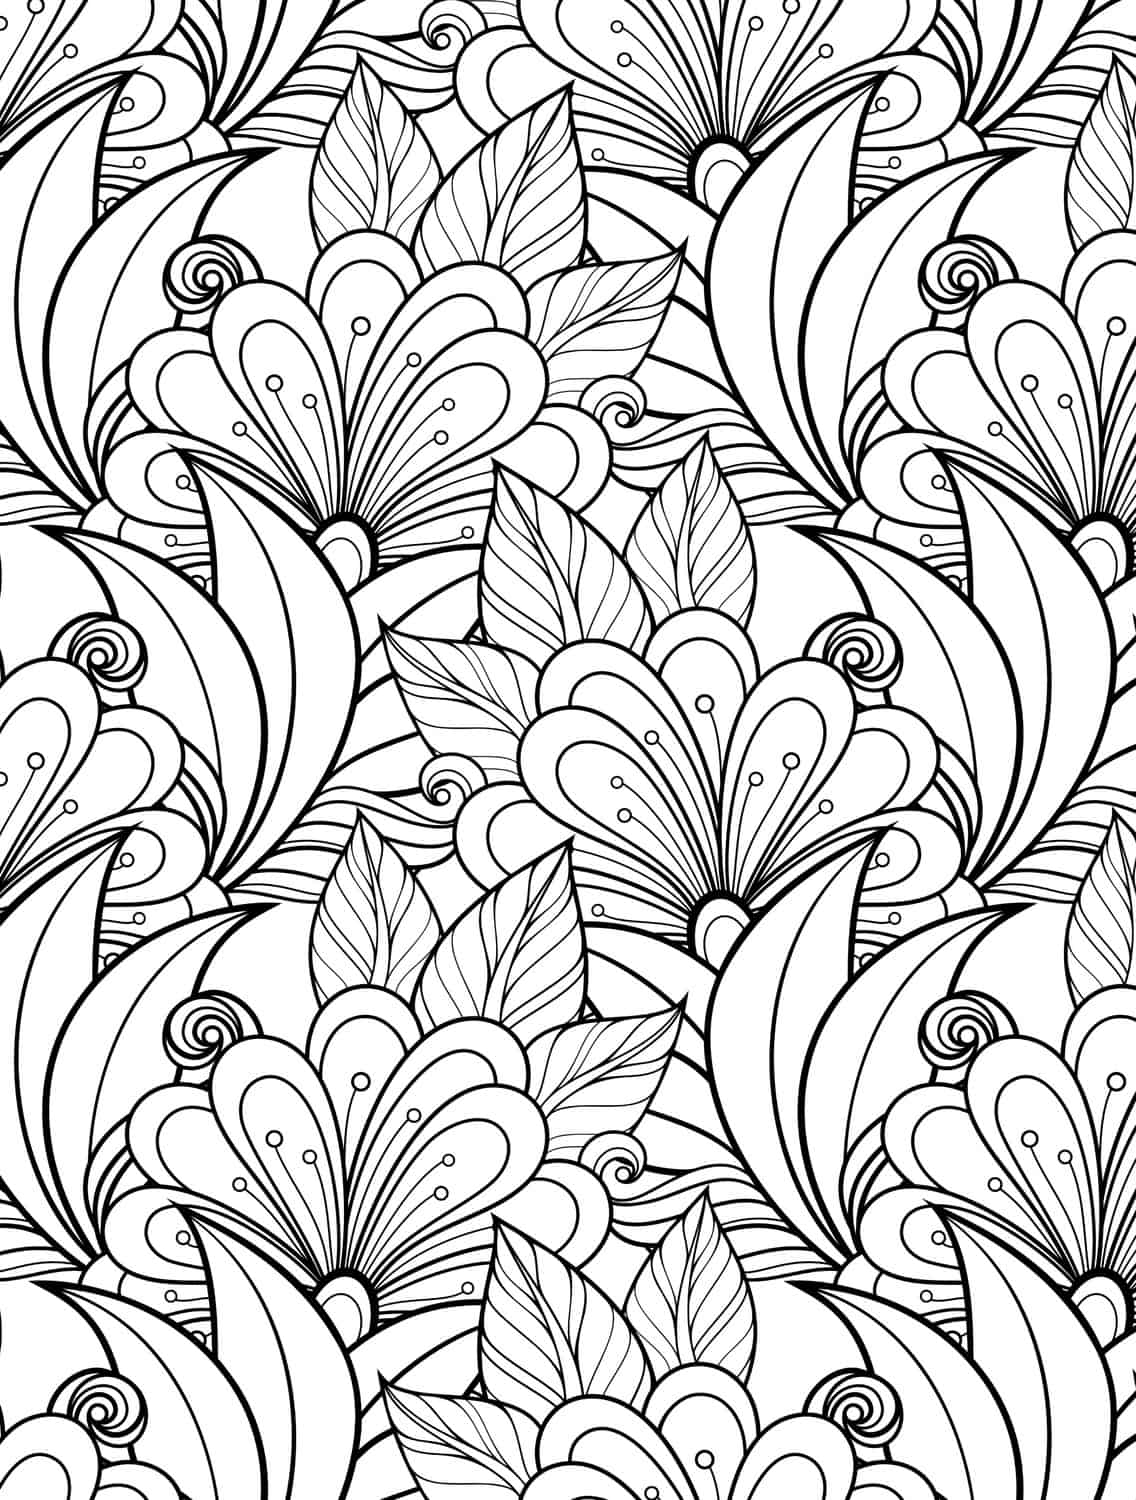 Printable coloring books adults - Gorgeous Free Printable Coloring Book Pages Web